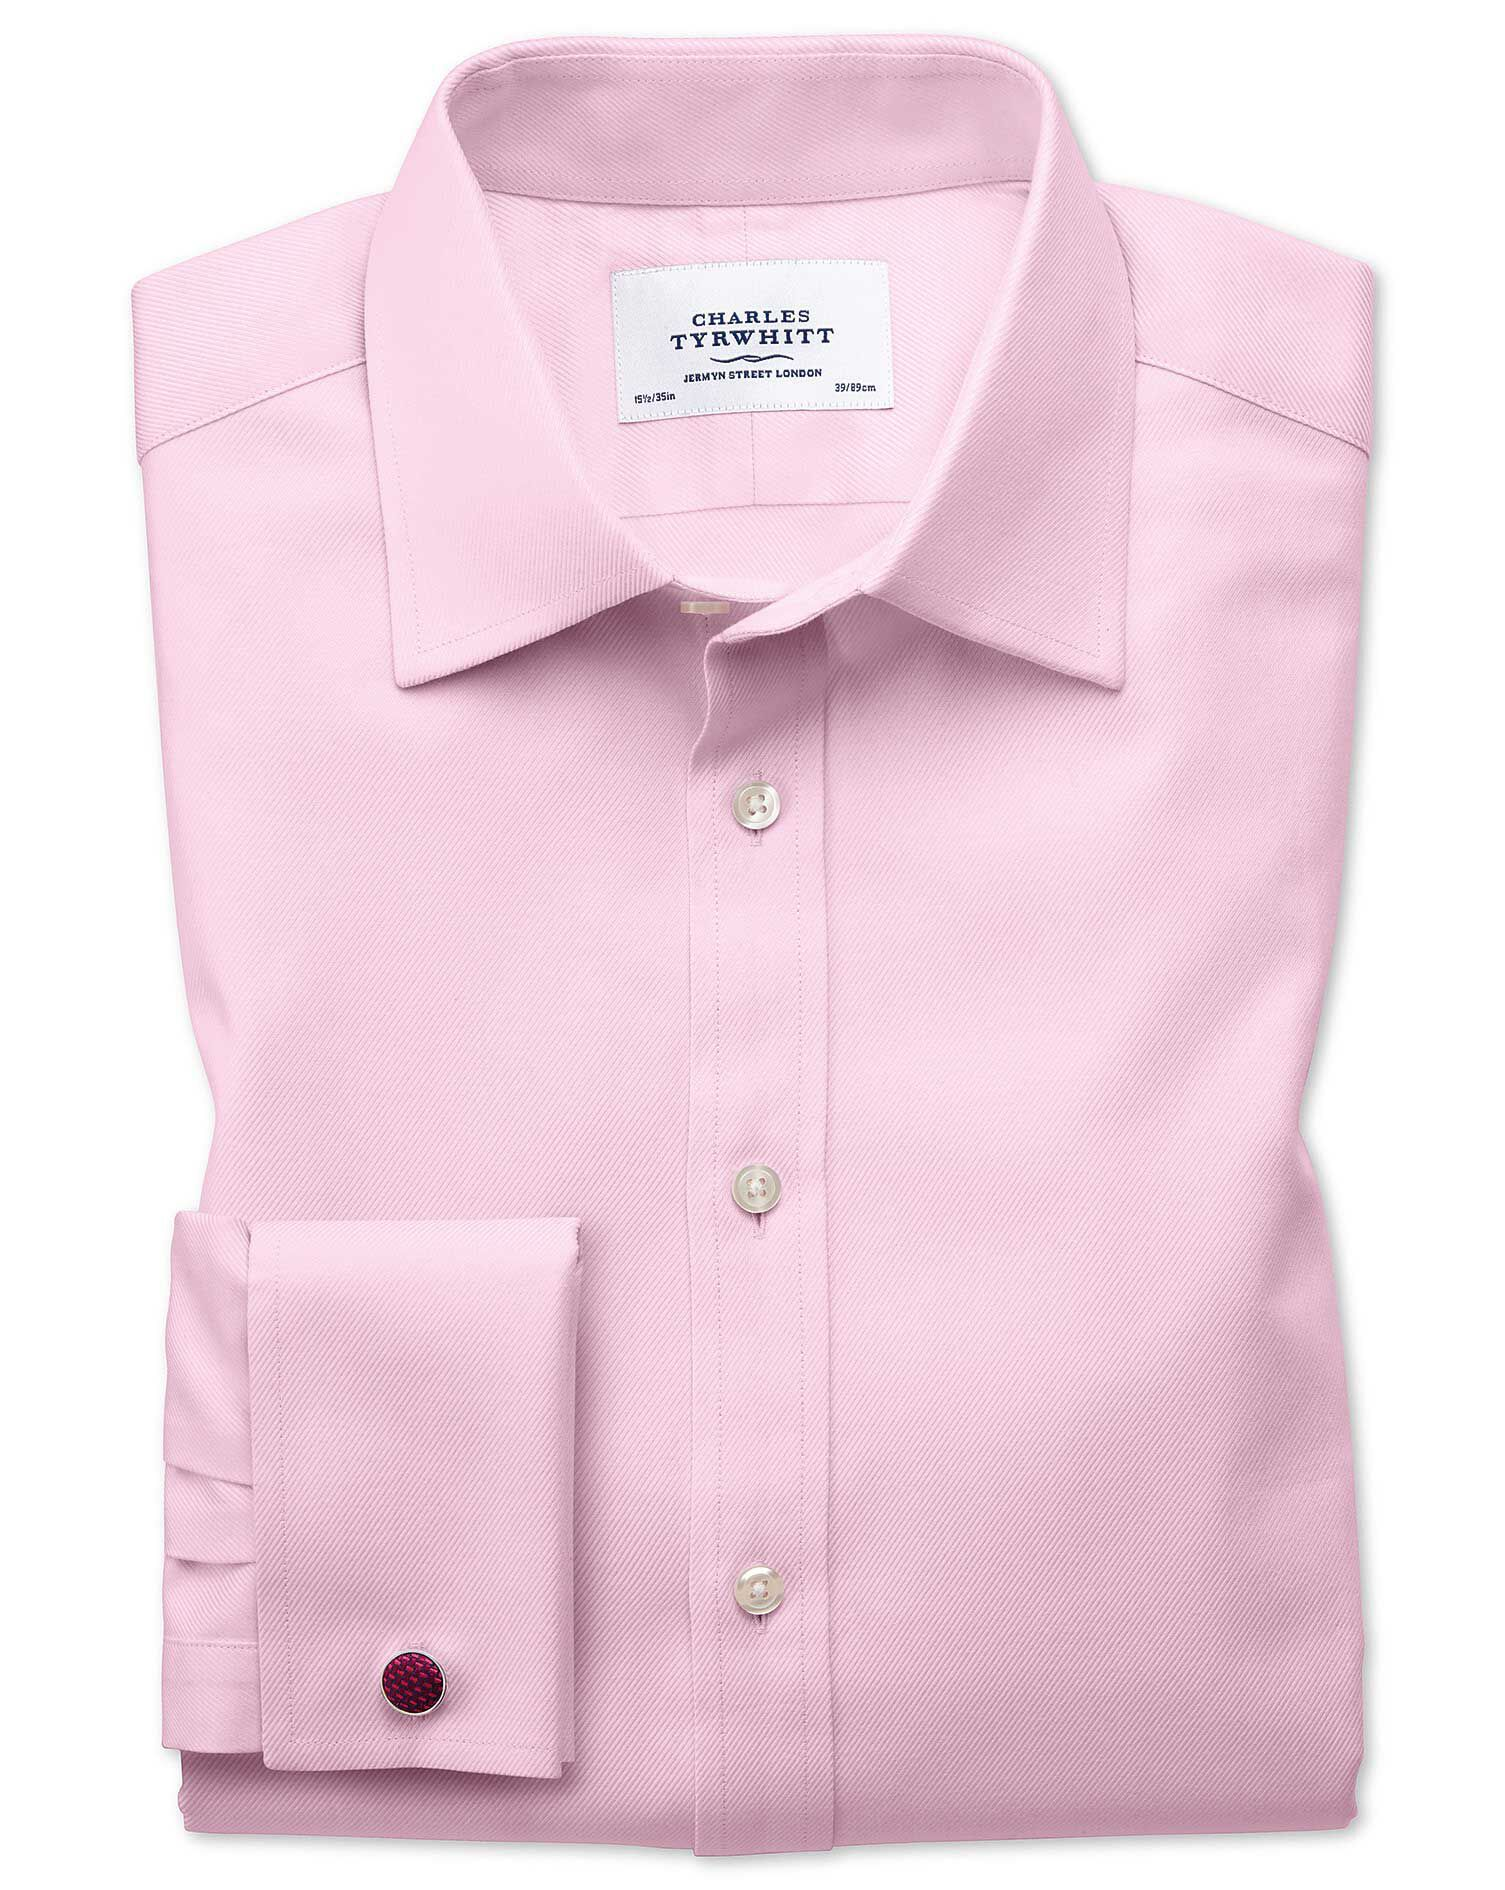 Classic Fit Egyptian Cotton Cavalry Twill Light Pink Formal Shirt Double Cuff Size 16/33 by Charles